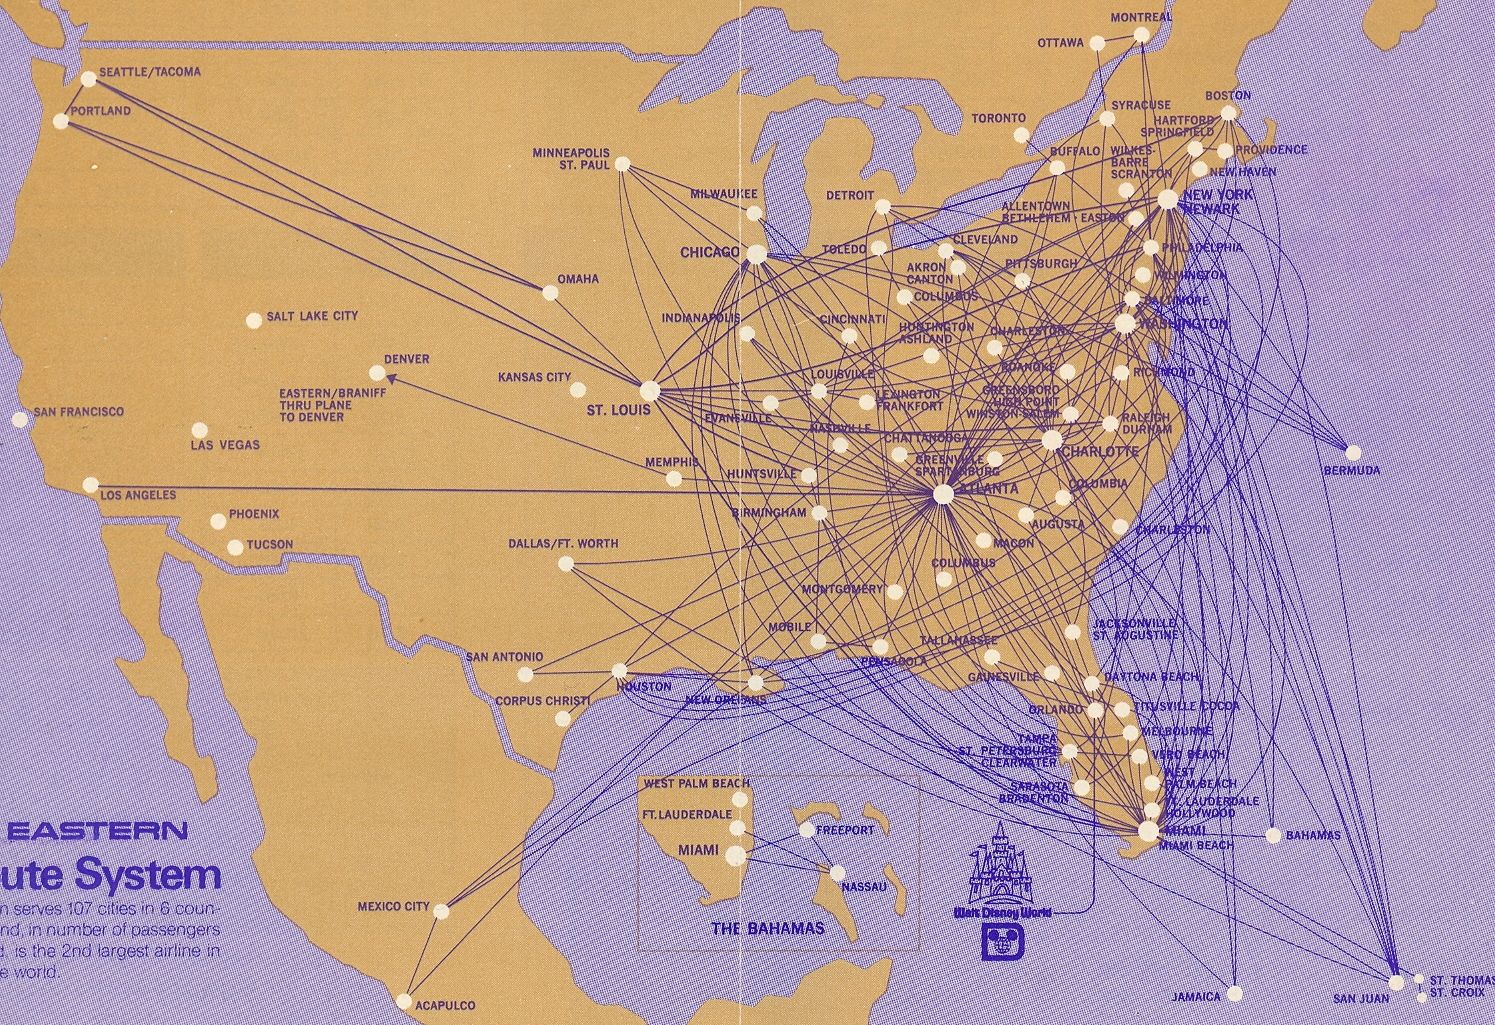 EA090672 1972 (With images) Route map, Airline logo